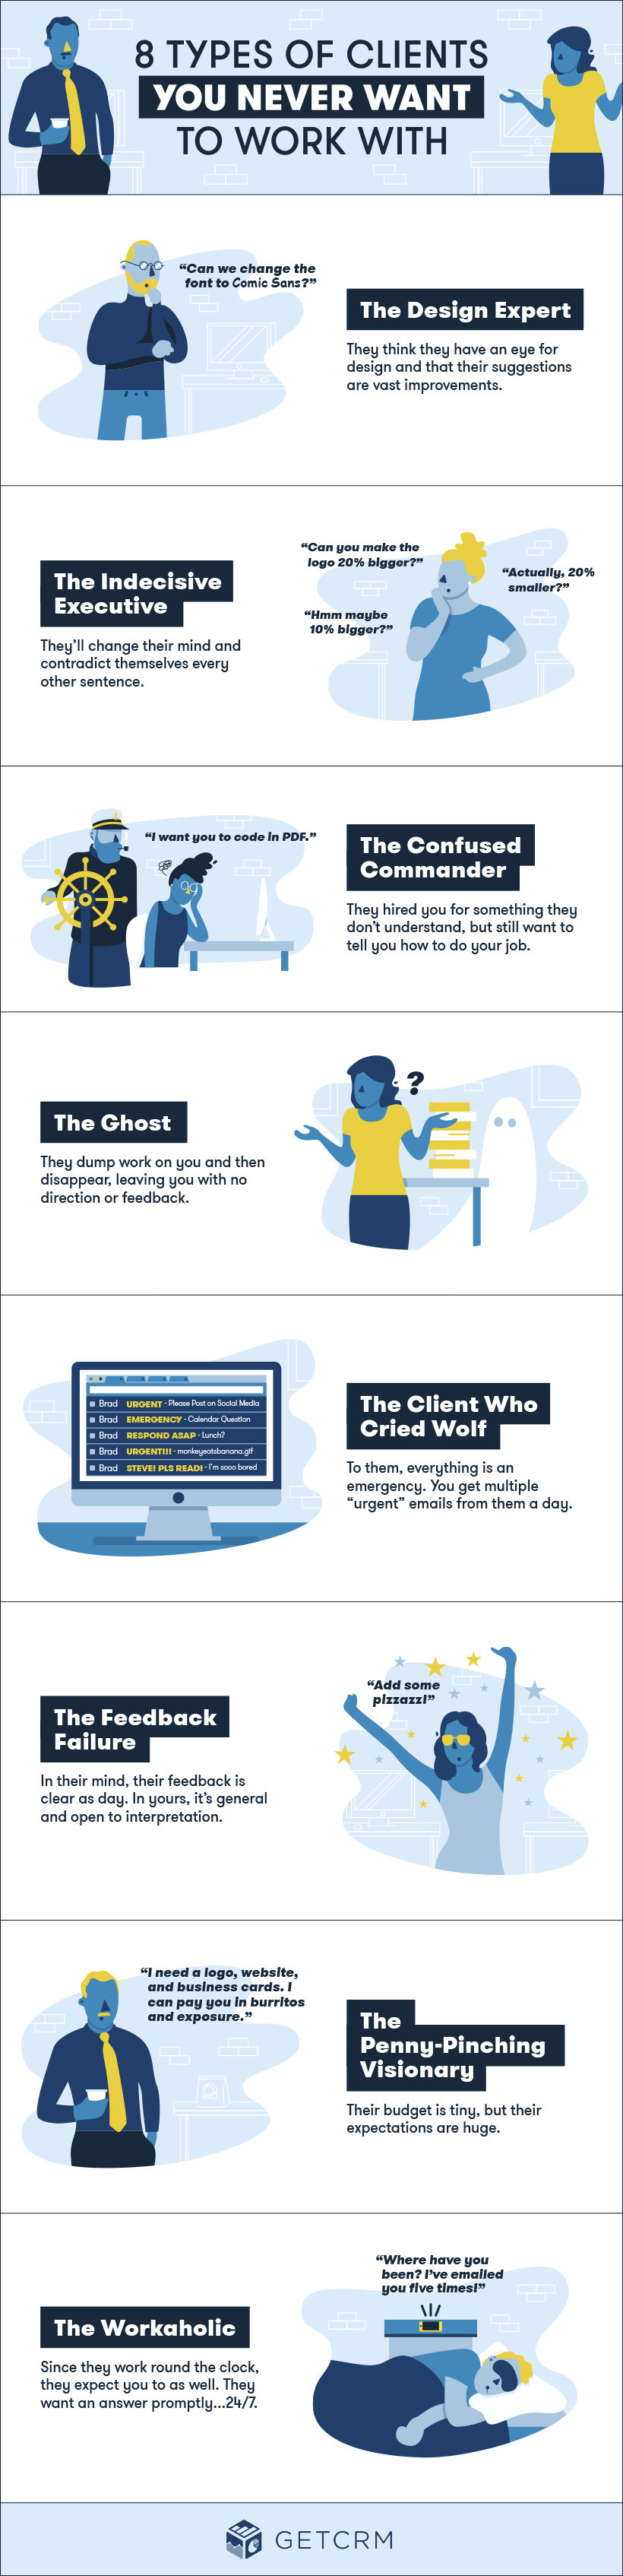 8 types of clients you never want to work with infographic